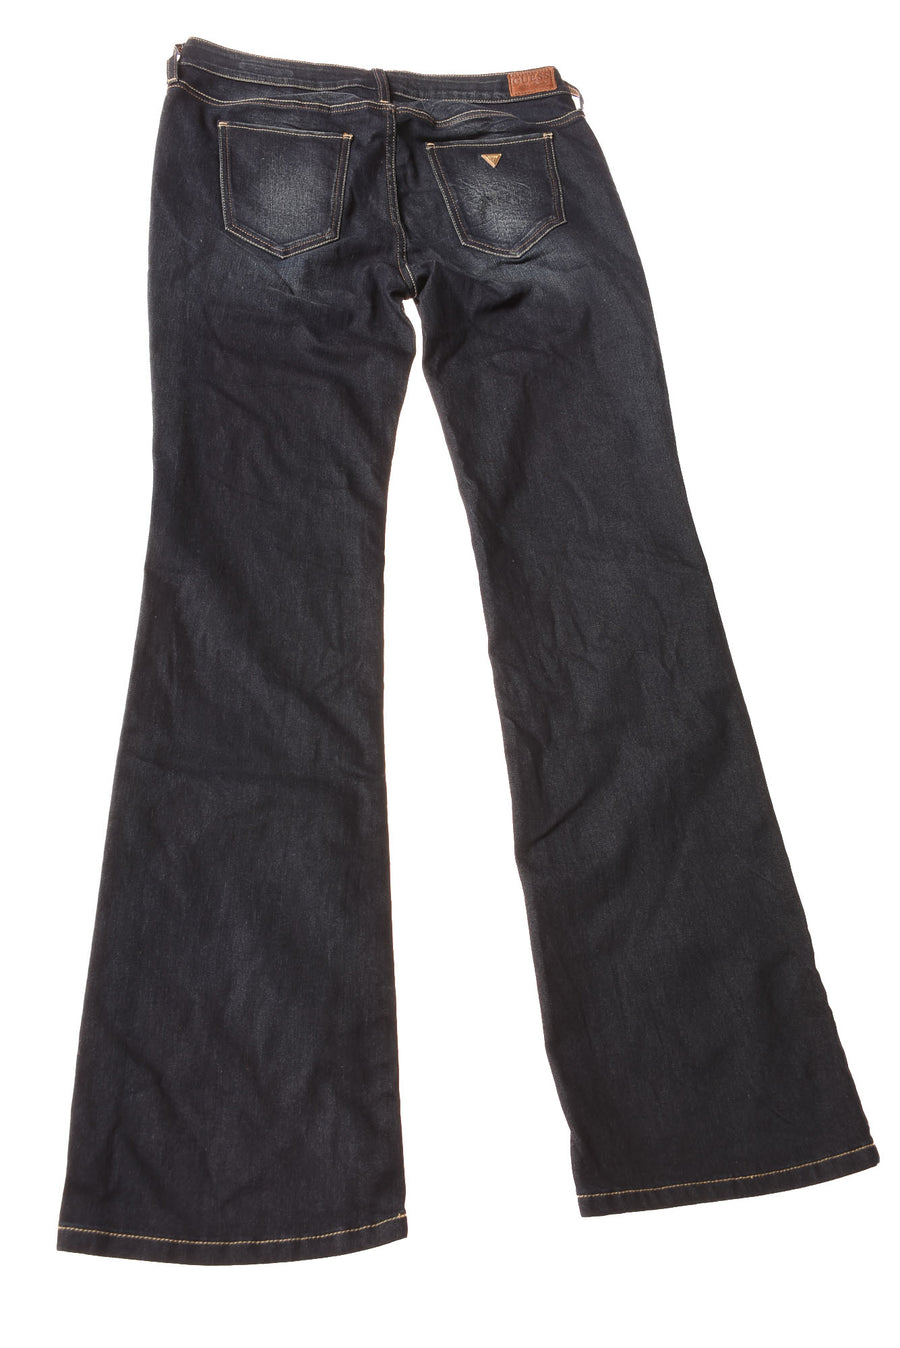 NEW Guess Women's Jeans 31 Blue